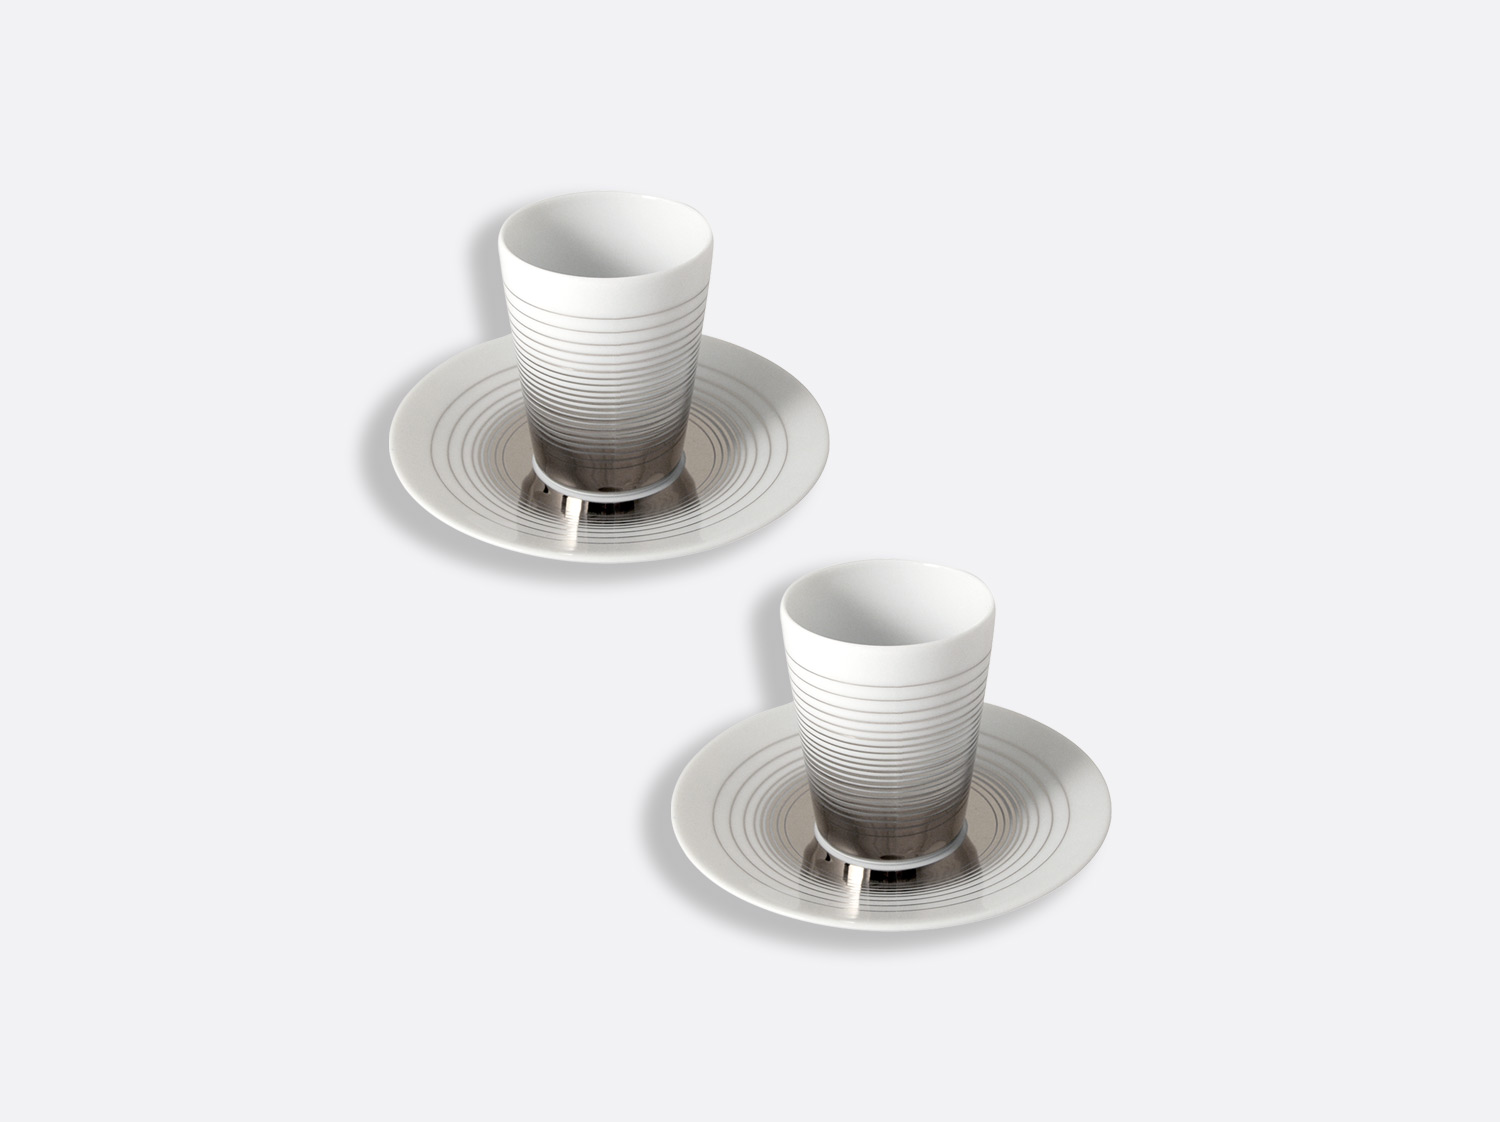 China Set of 2 handle-less coffee cups and saucers 7-cl of the collection Loop | Bernardaud